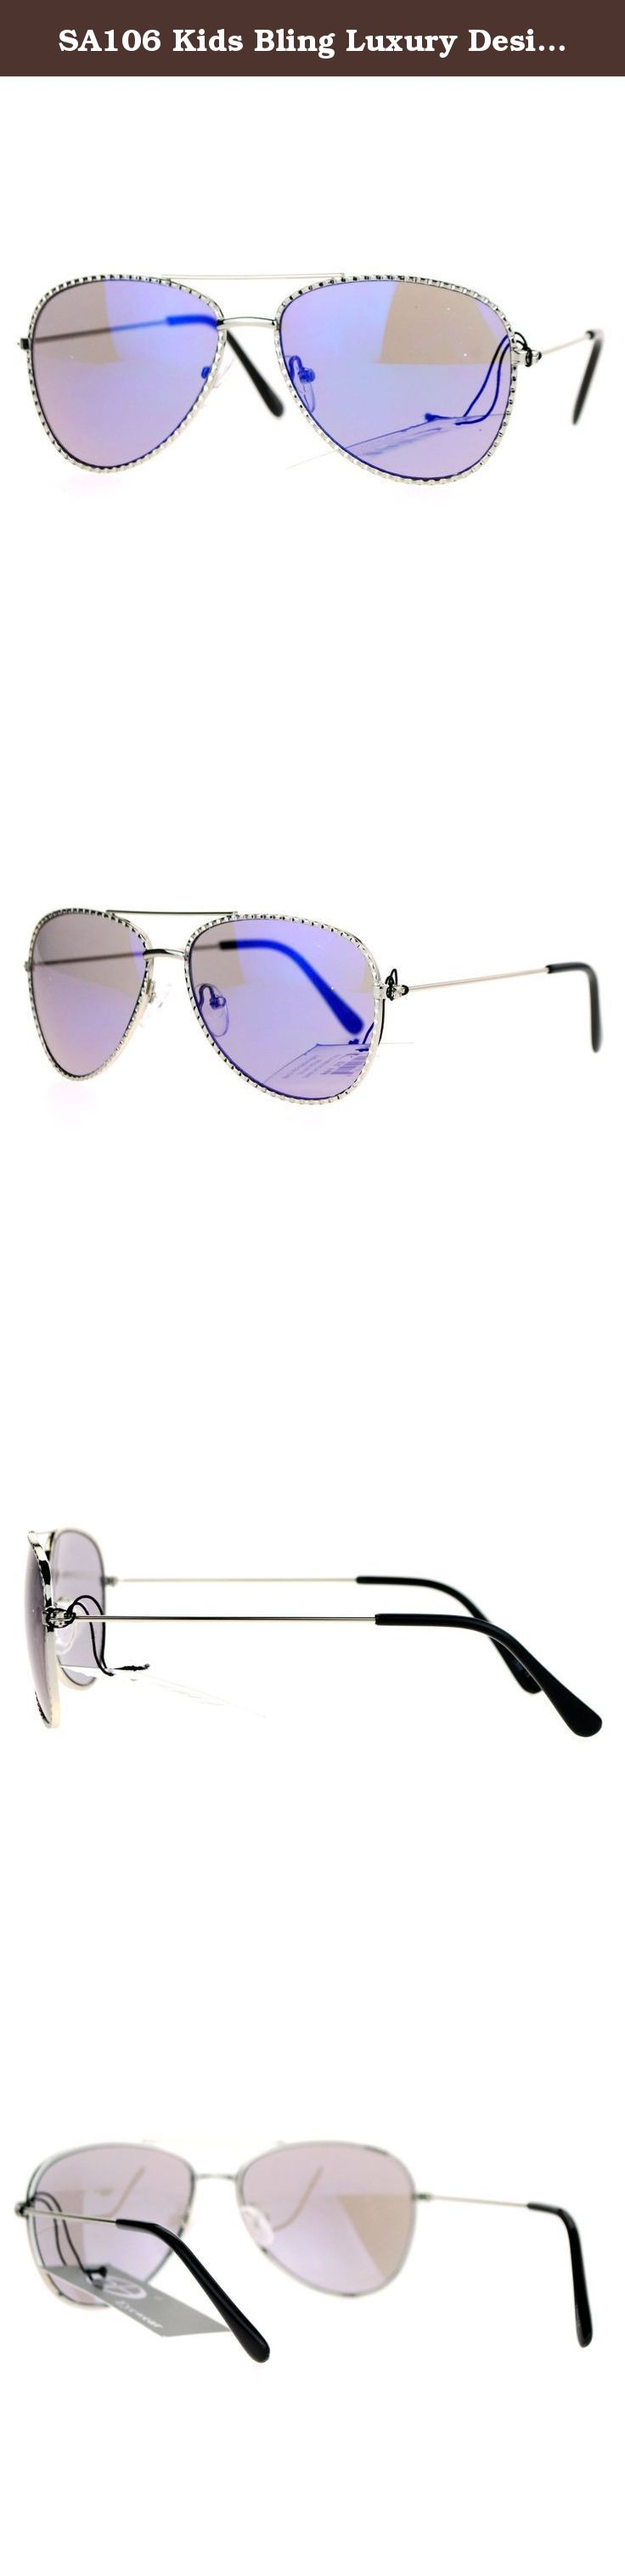 595b8f7c4ca SA106 Kids Bling Luxury Designer Fashion Metal Aviator Sunglasses Silver  Blue. SA106 small kid size flashy bling metal rim tear drop shape classic  aviator ...